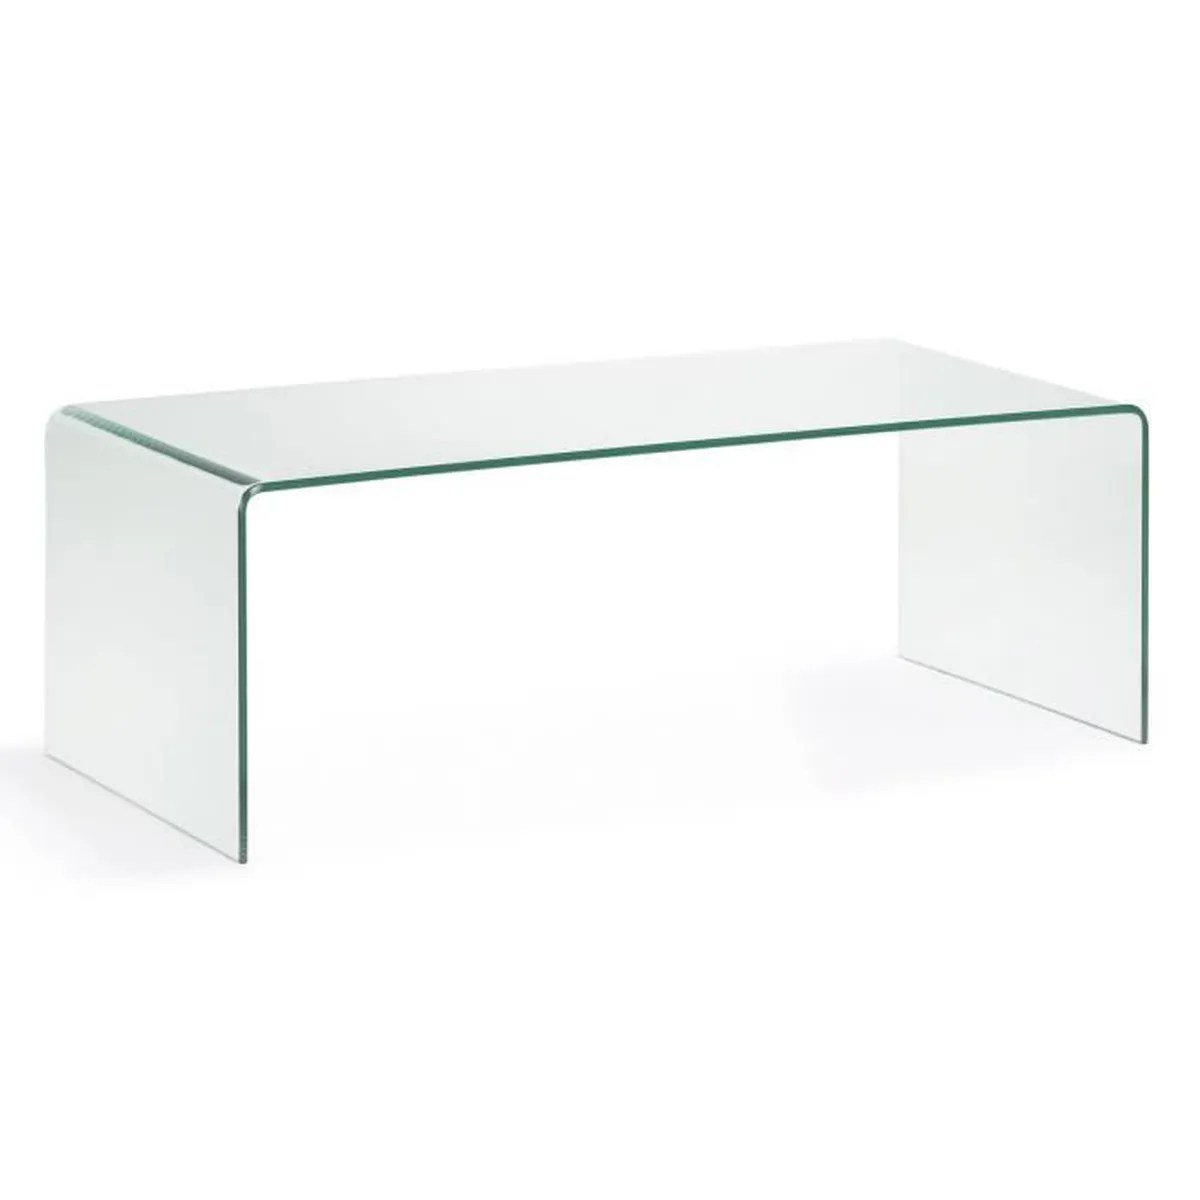 Table Verre Pas Cher Fabulous Table Basse Table Basse Burano With Table Basse